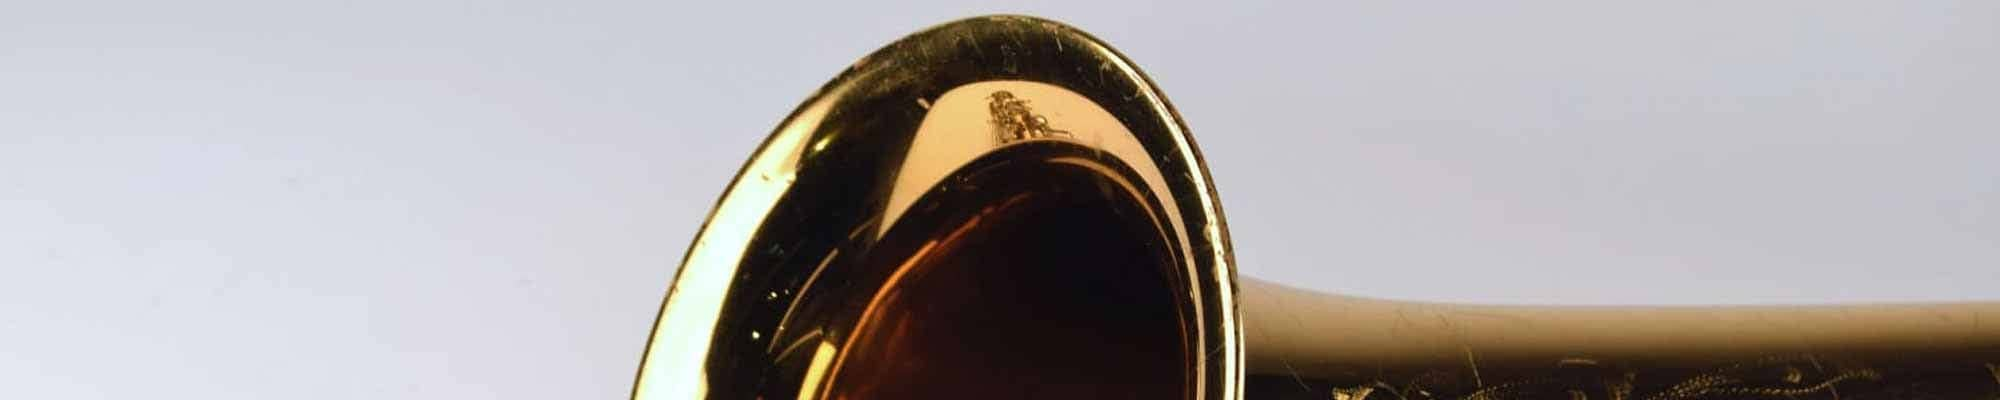 What to Consider When Buying a Relacquered Saxophone